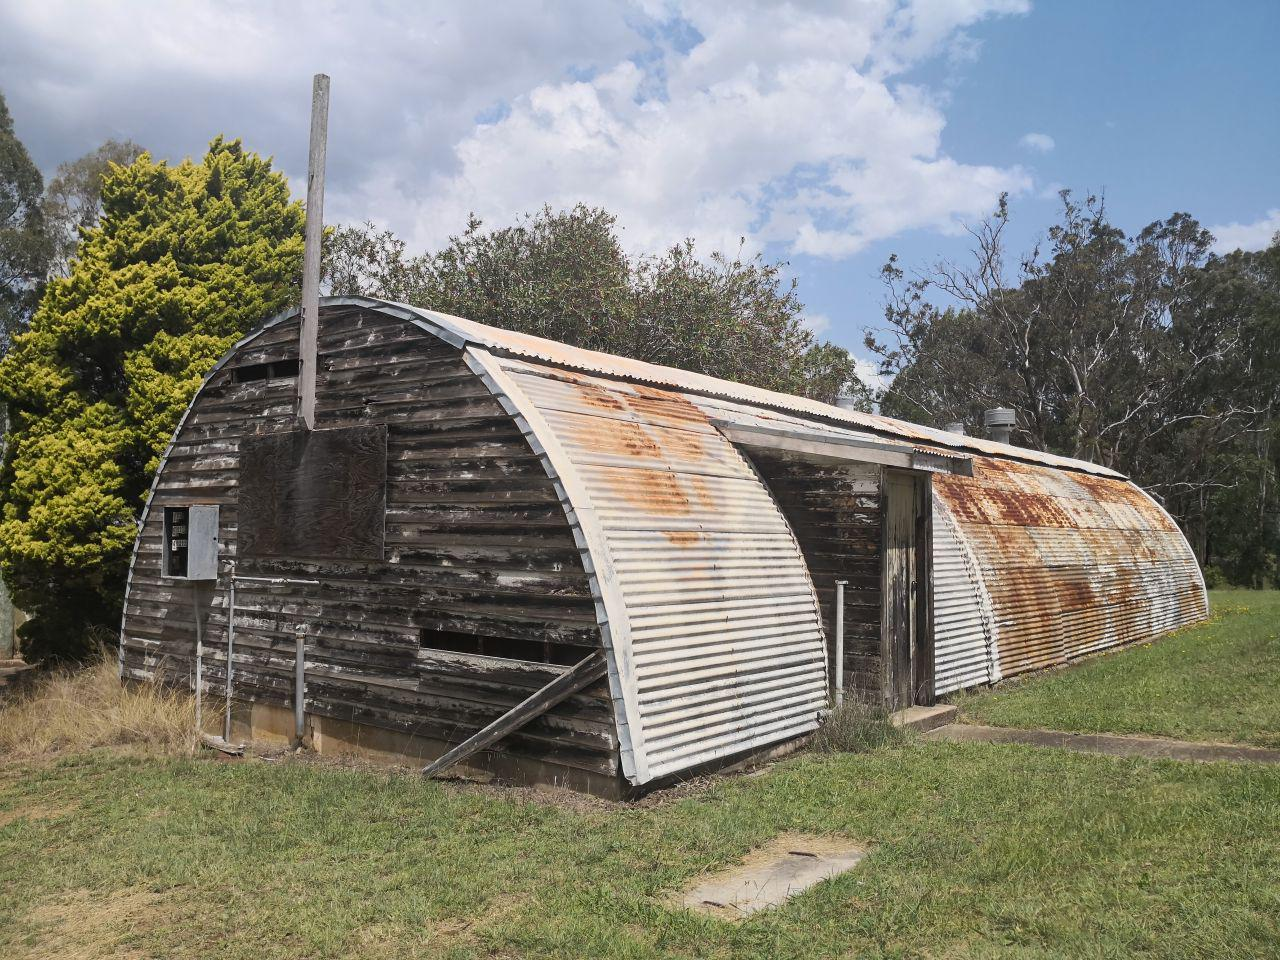 Nature, Outdoors, Building, Countryside, Shelter, Rural, Hut, Tent, Shack, Housing